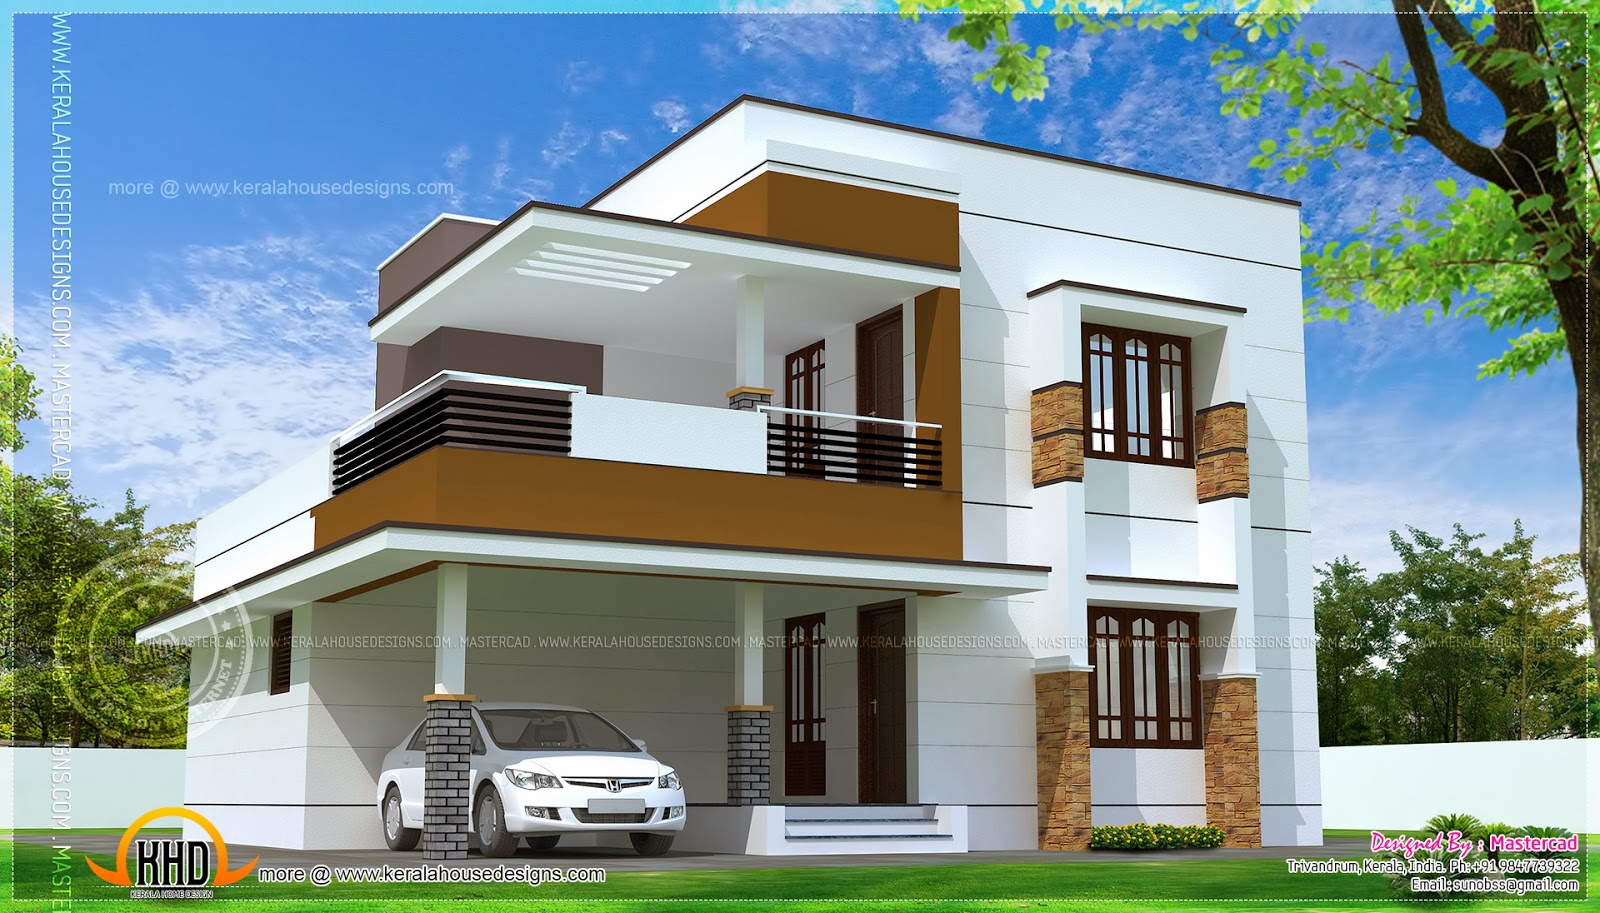 November 2013 kerala home design and floor plans for New home designs 2015